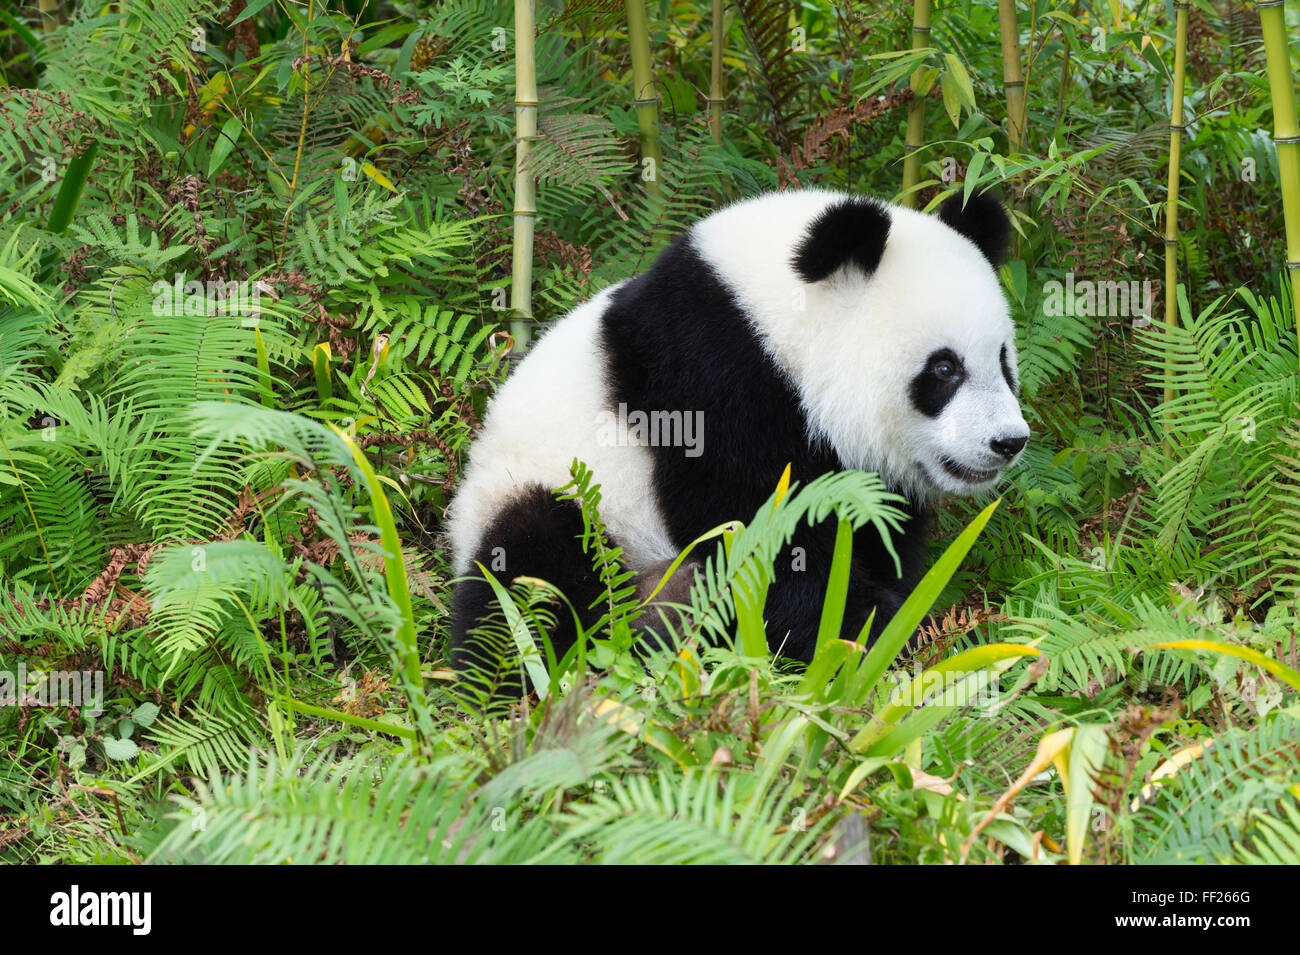 Two years aged young giant panda (Ailuropoda melanoleuca), China Conservation and Research Centre, Chengdu, Sichuan, Stock Photo